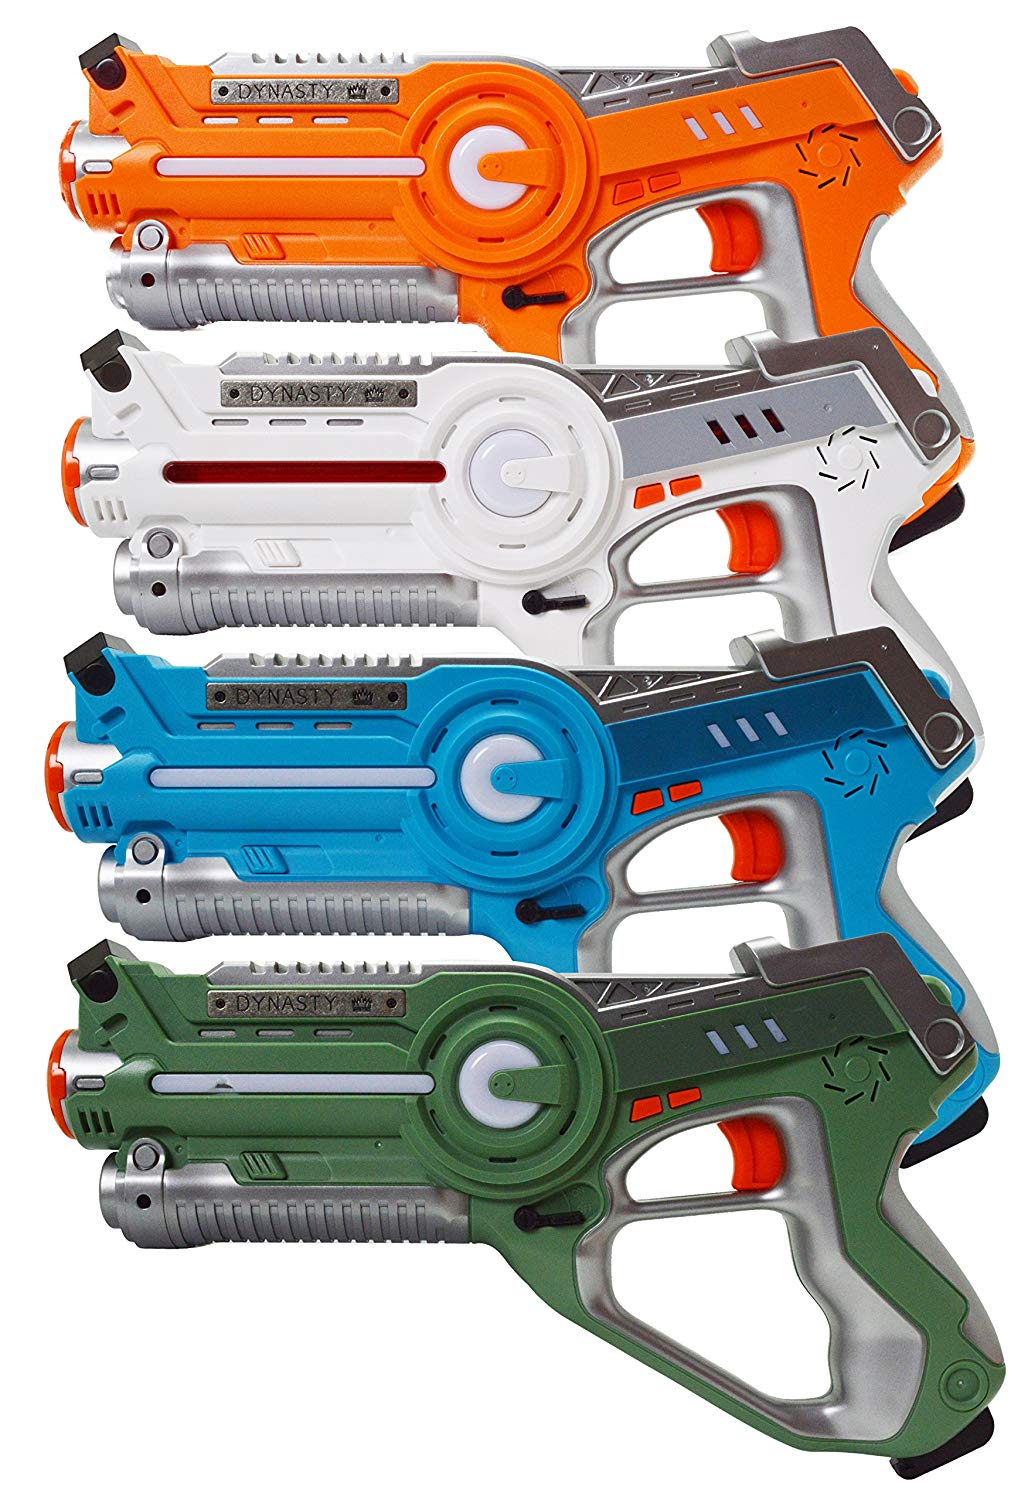 DYNASTY TOYS Laser Tag Set Toys and Carrying Case